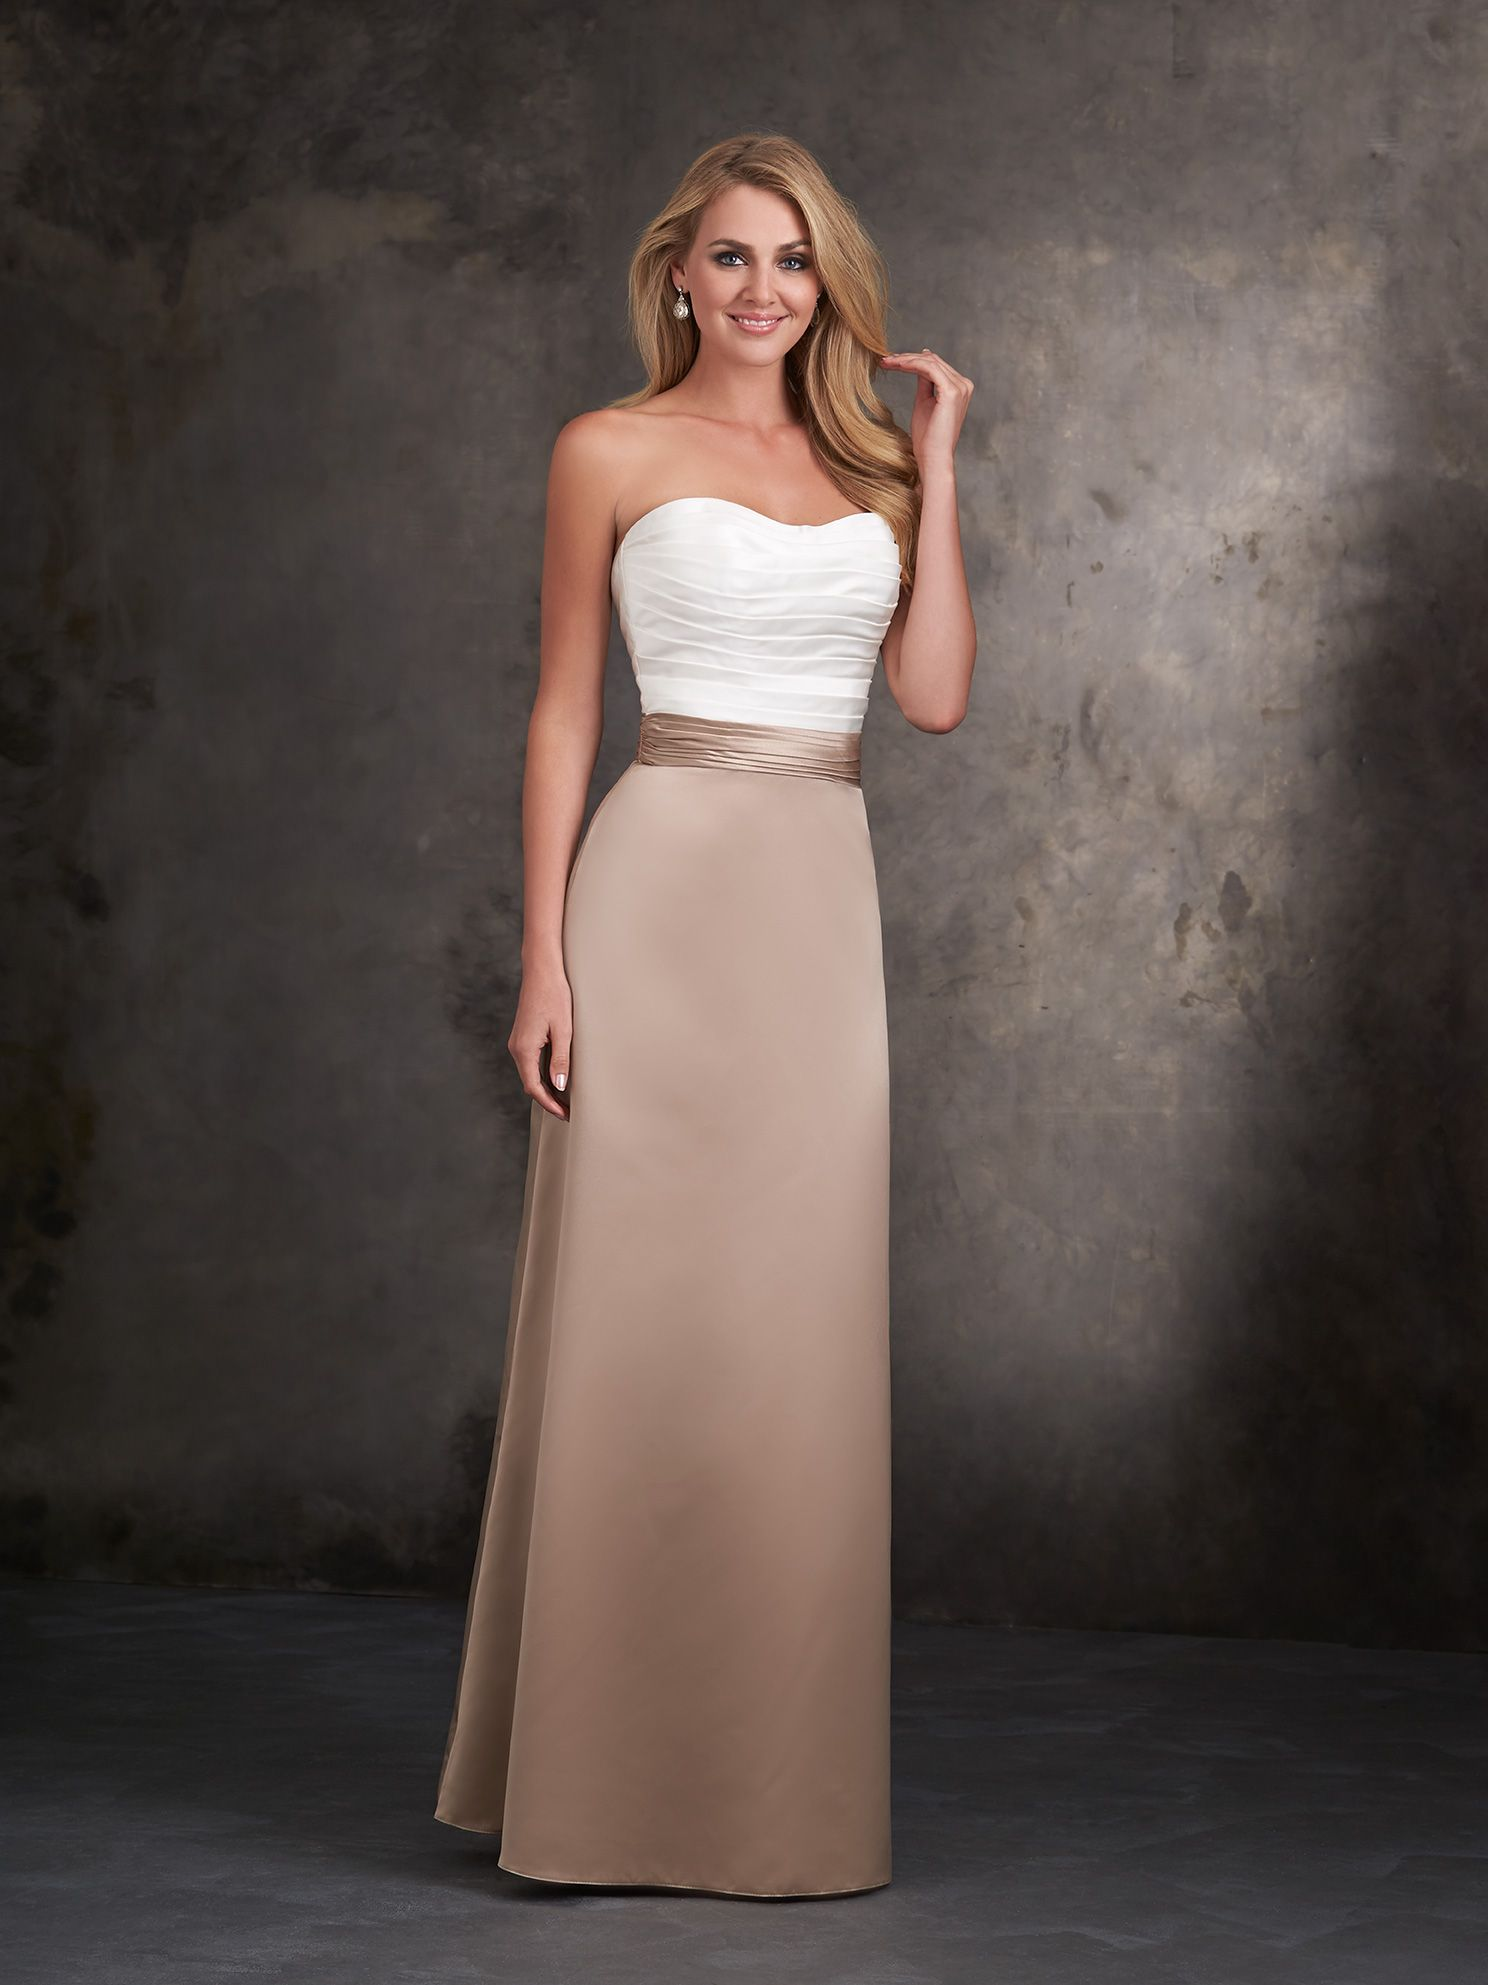 You can do the top bottom same color or different lots of discover the allure 1401 bridesmaid dress find exceptional allure bridesmaid dresses at the wedding shoppe ombrellifo Gallery